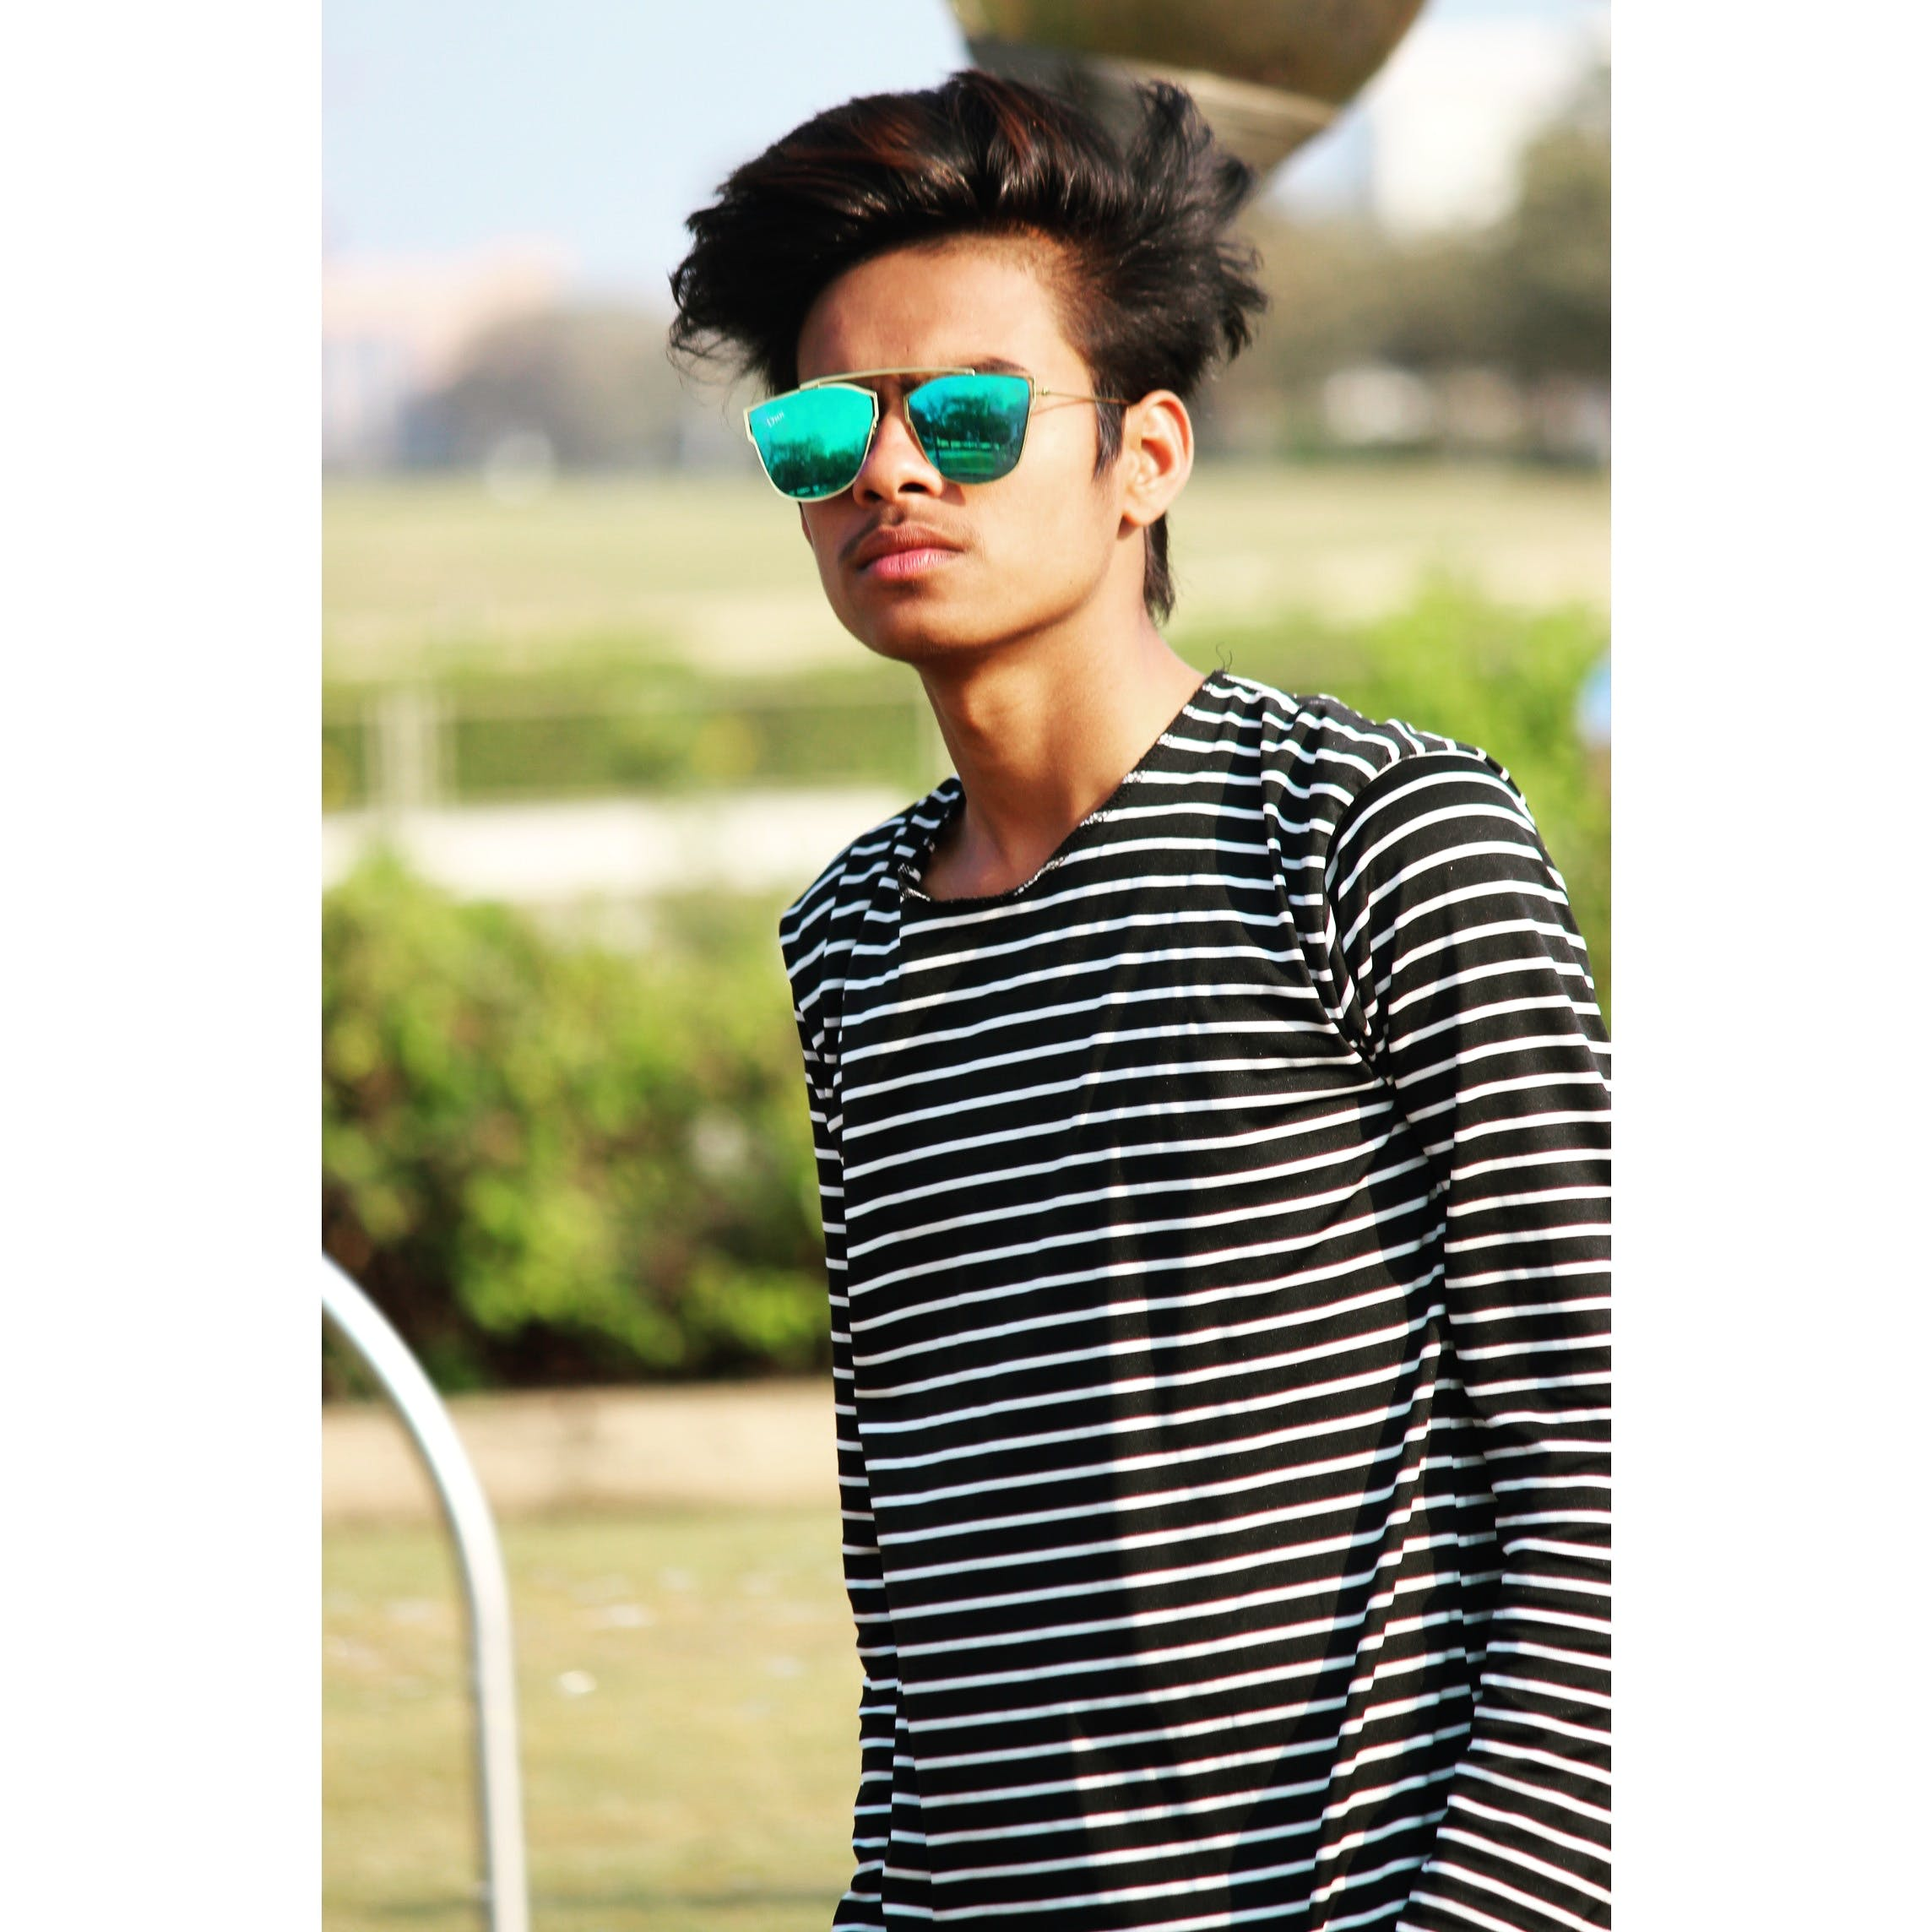 White and Black Striped Long-sleeved Shirt